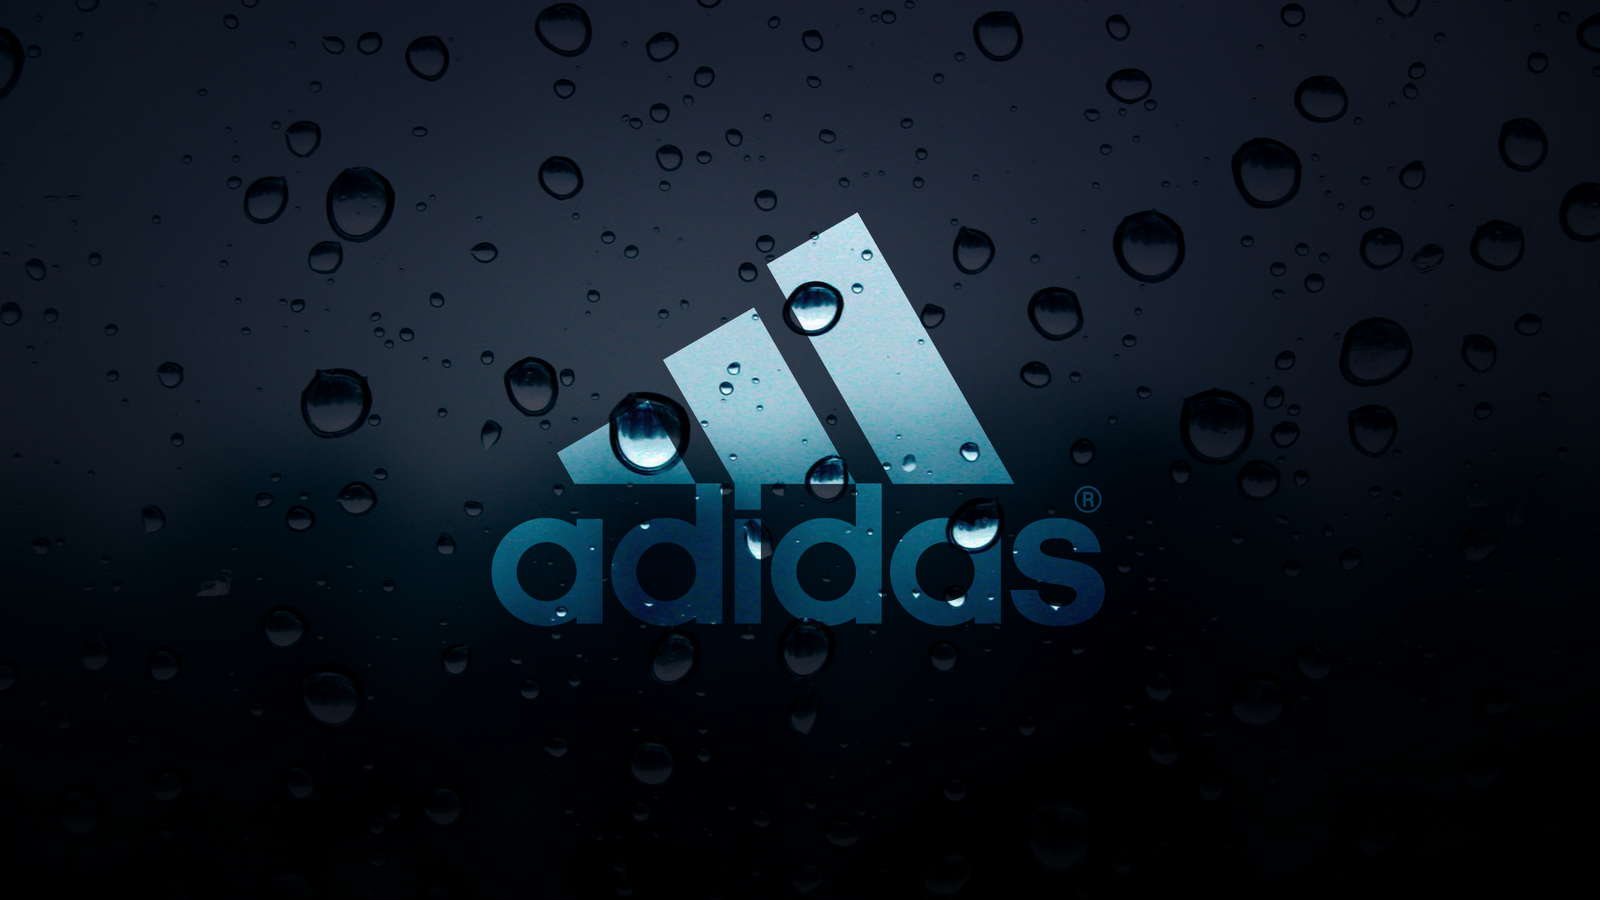 2a4510cce 31 Adidas HD Wallpapers